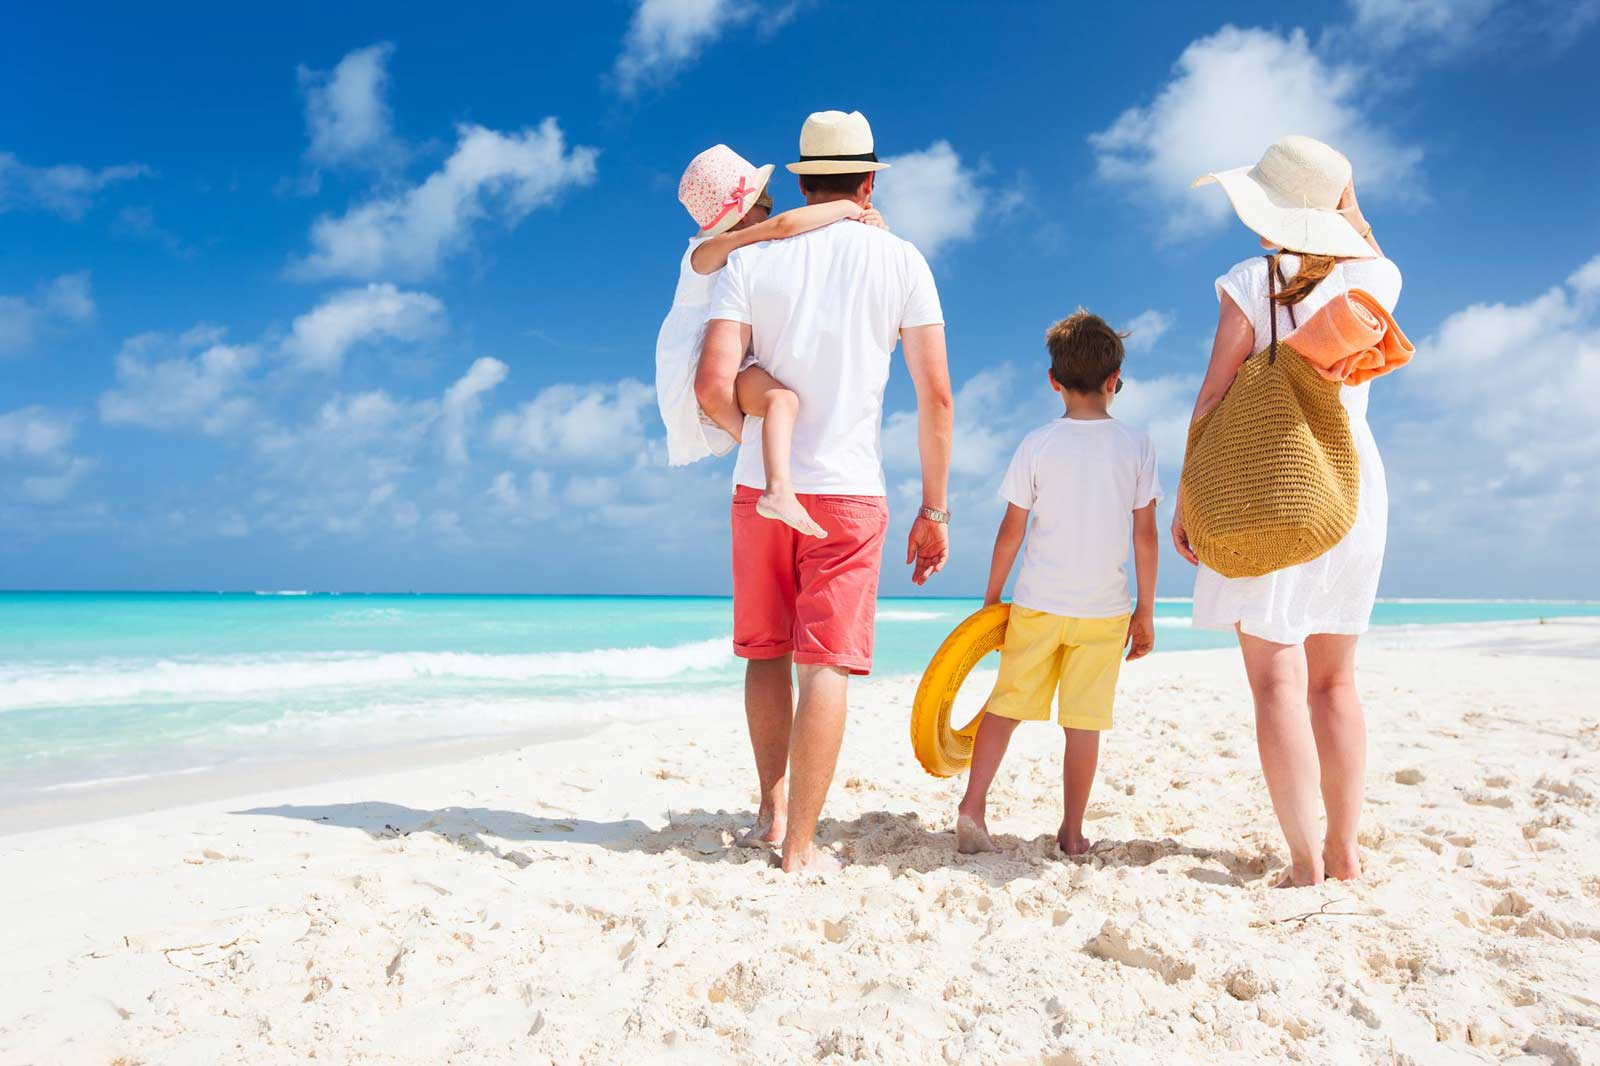 Planning a trip this Summer? Use Mortgage Refinance Cash-out